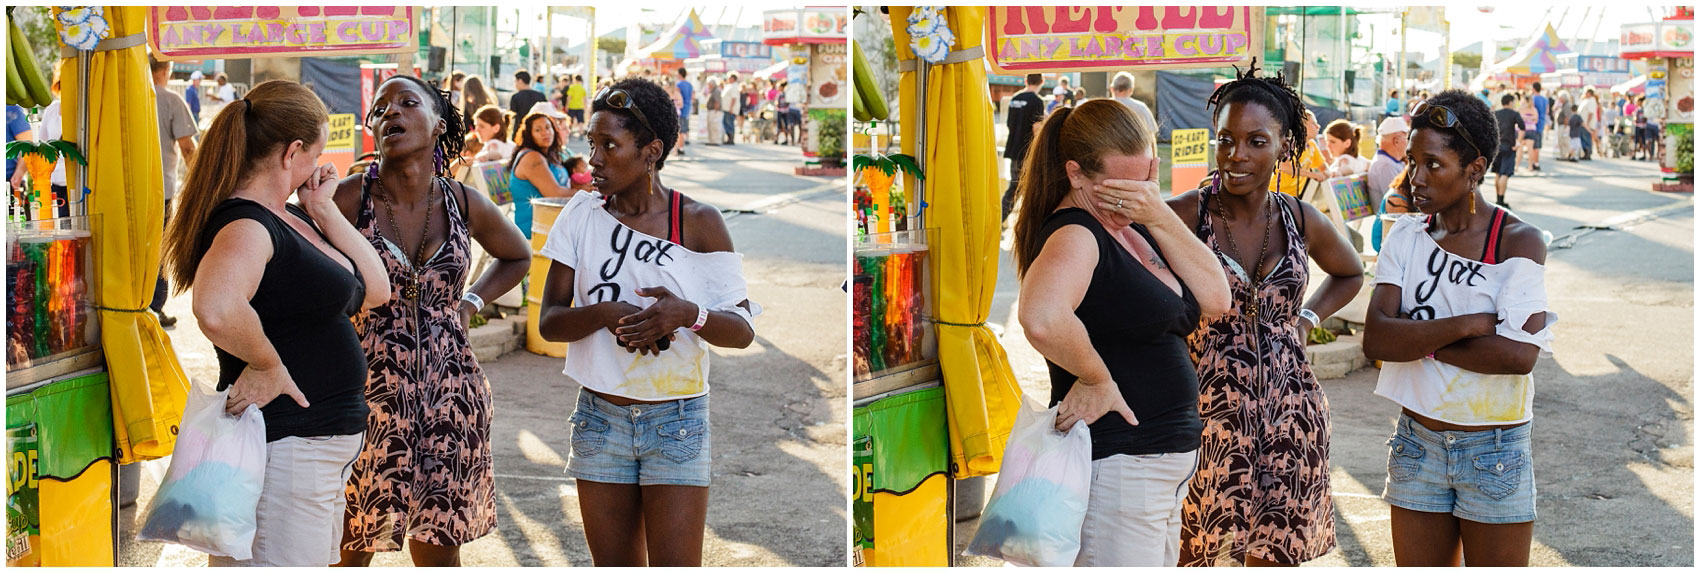 Great_NY_State_Fair_7001